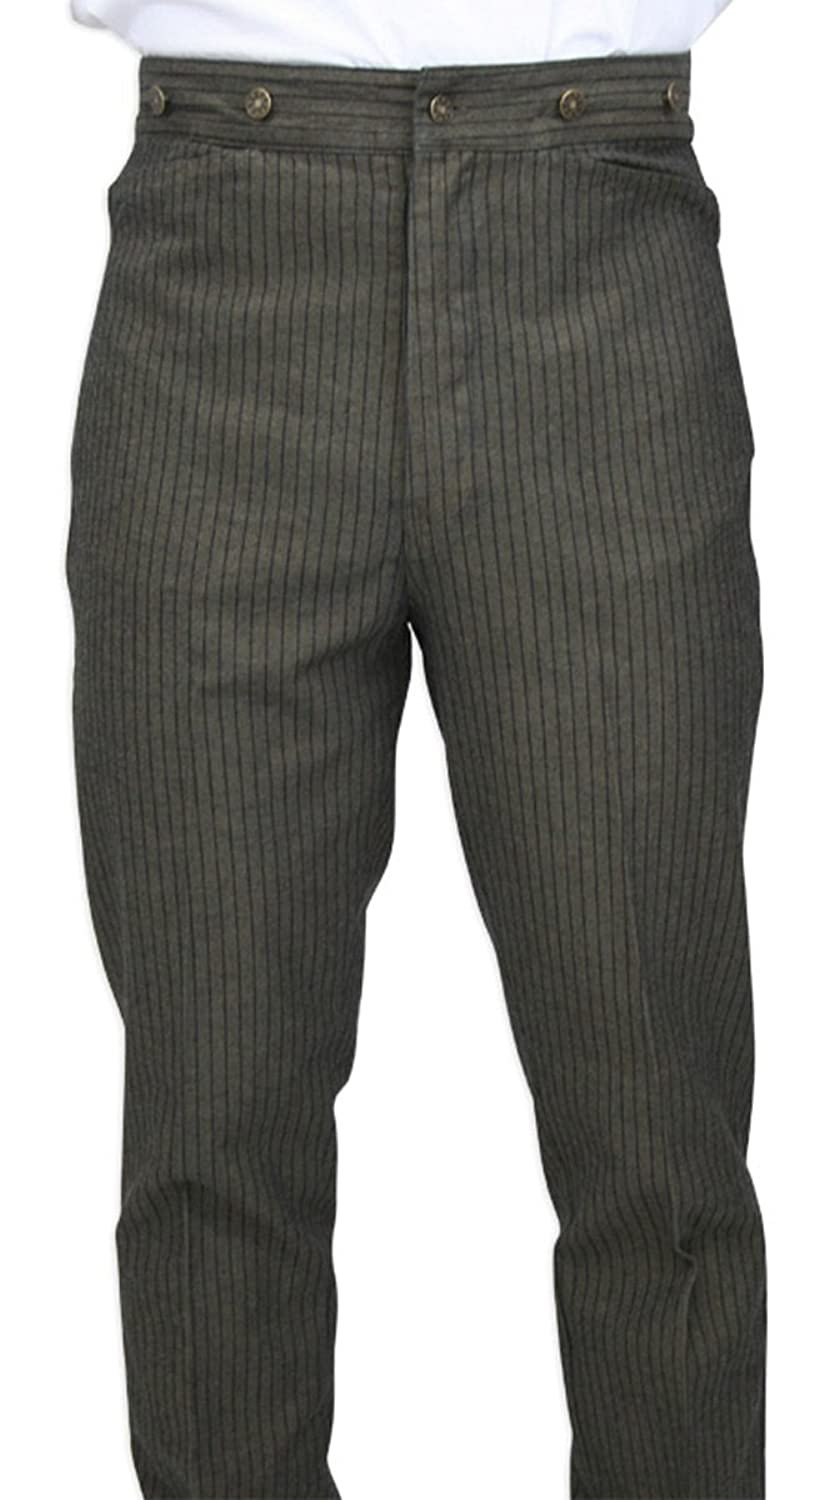 Men's Vintage Pants, Trousers, Jeans, Overalls High Waist Cotton Ludlow Striped Trousers $59.95 AT vintagedancer.com